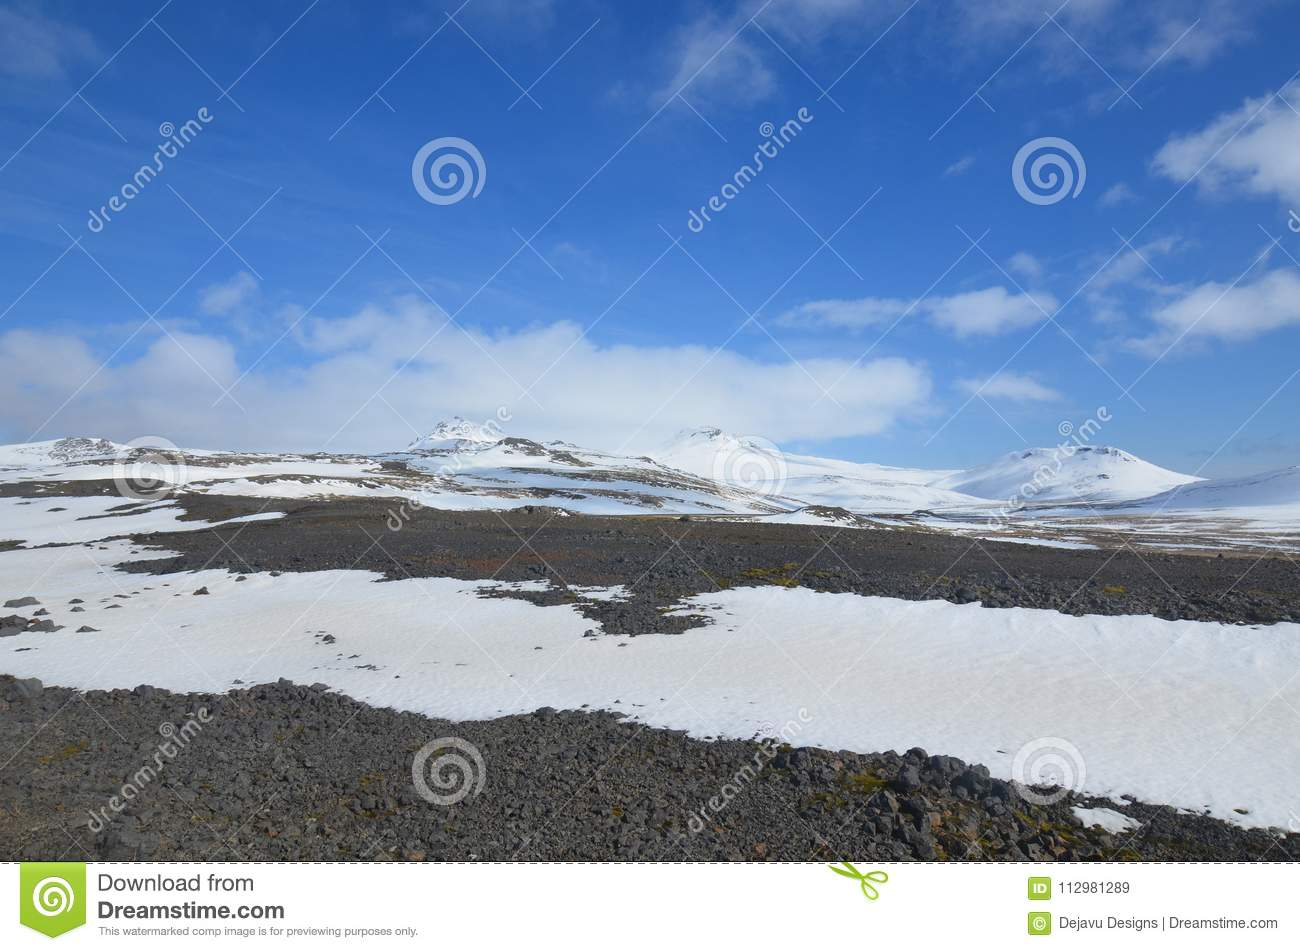 Stunning landscape of glaciers and snowcapped mountains in Iceland